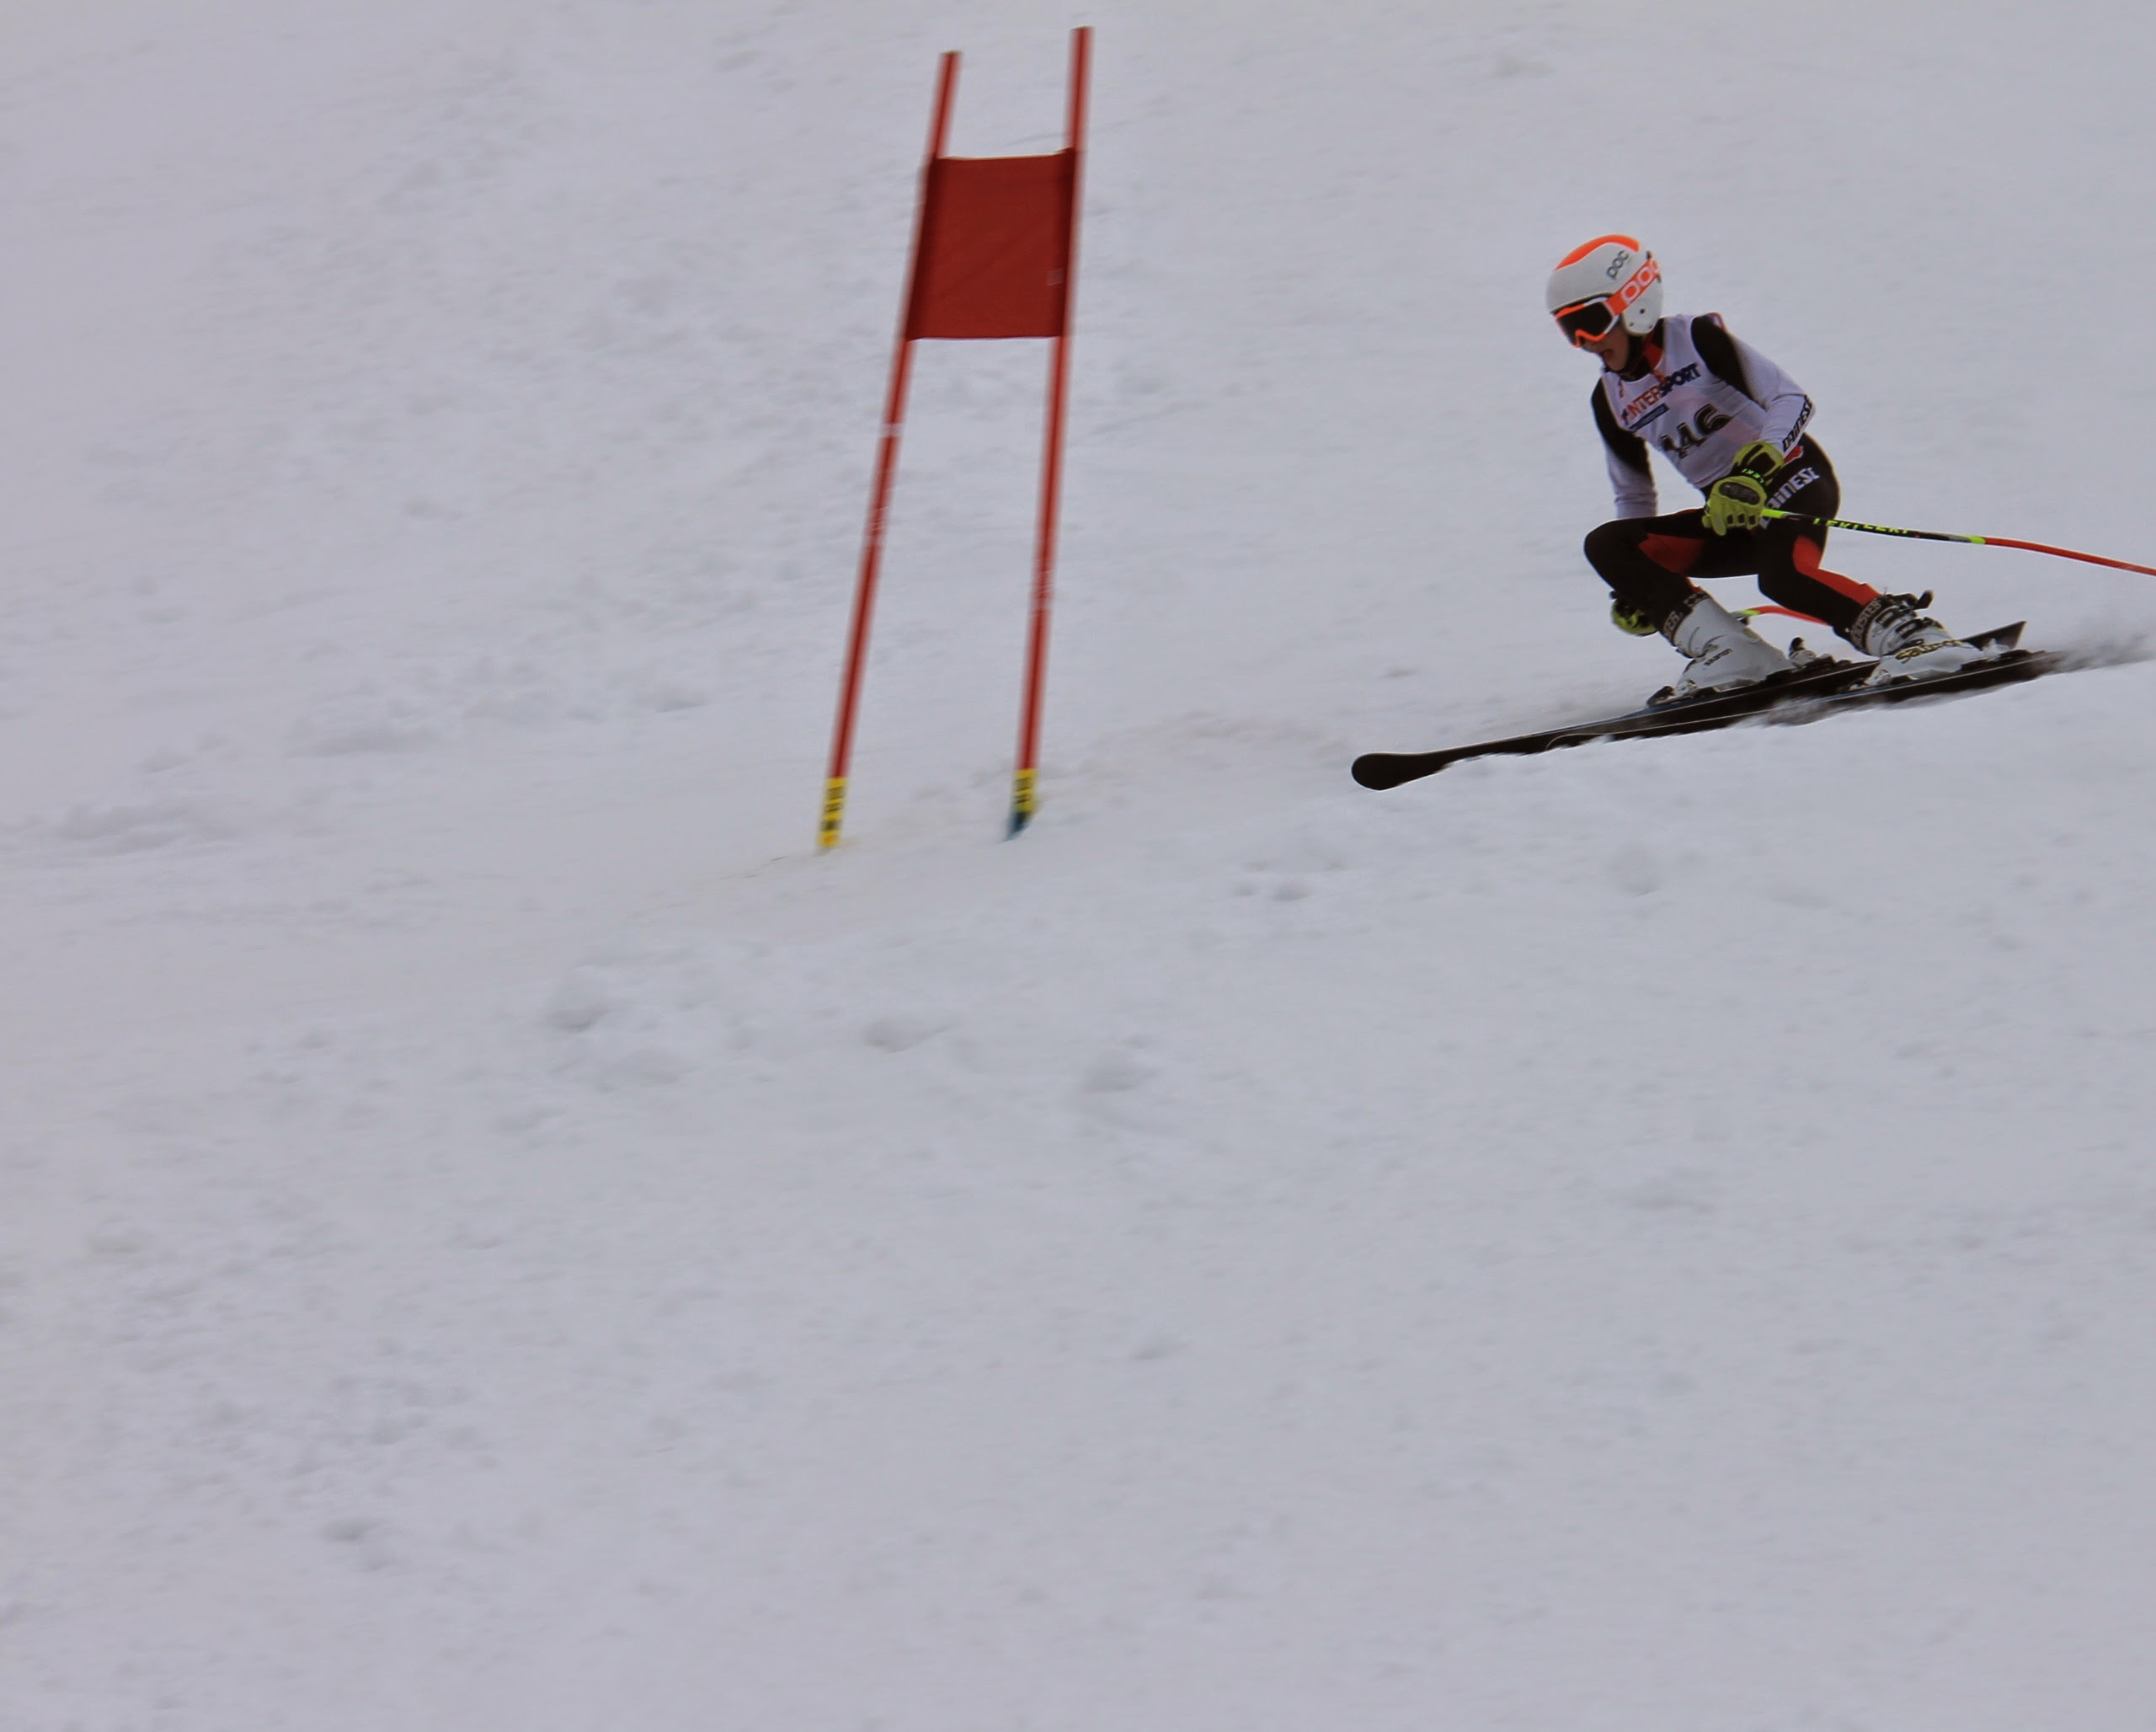 SGIS Invitational - Morgins - Jan 2015